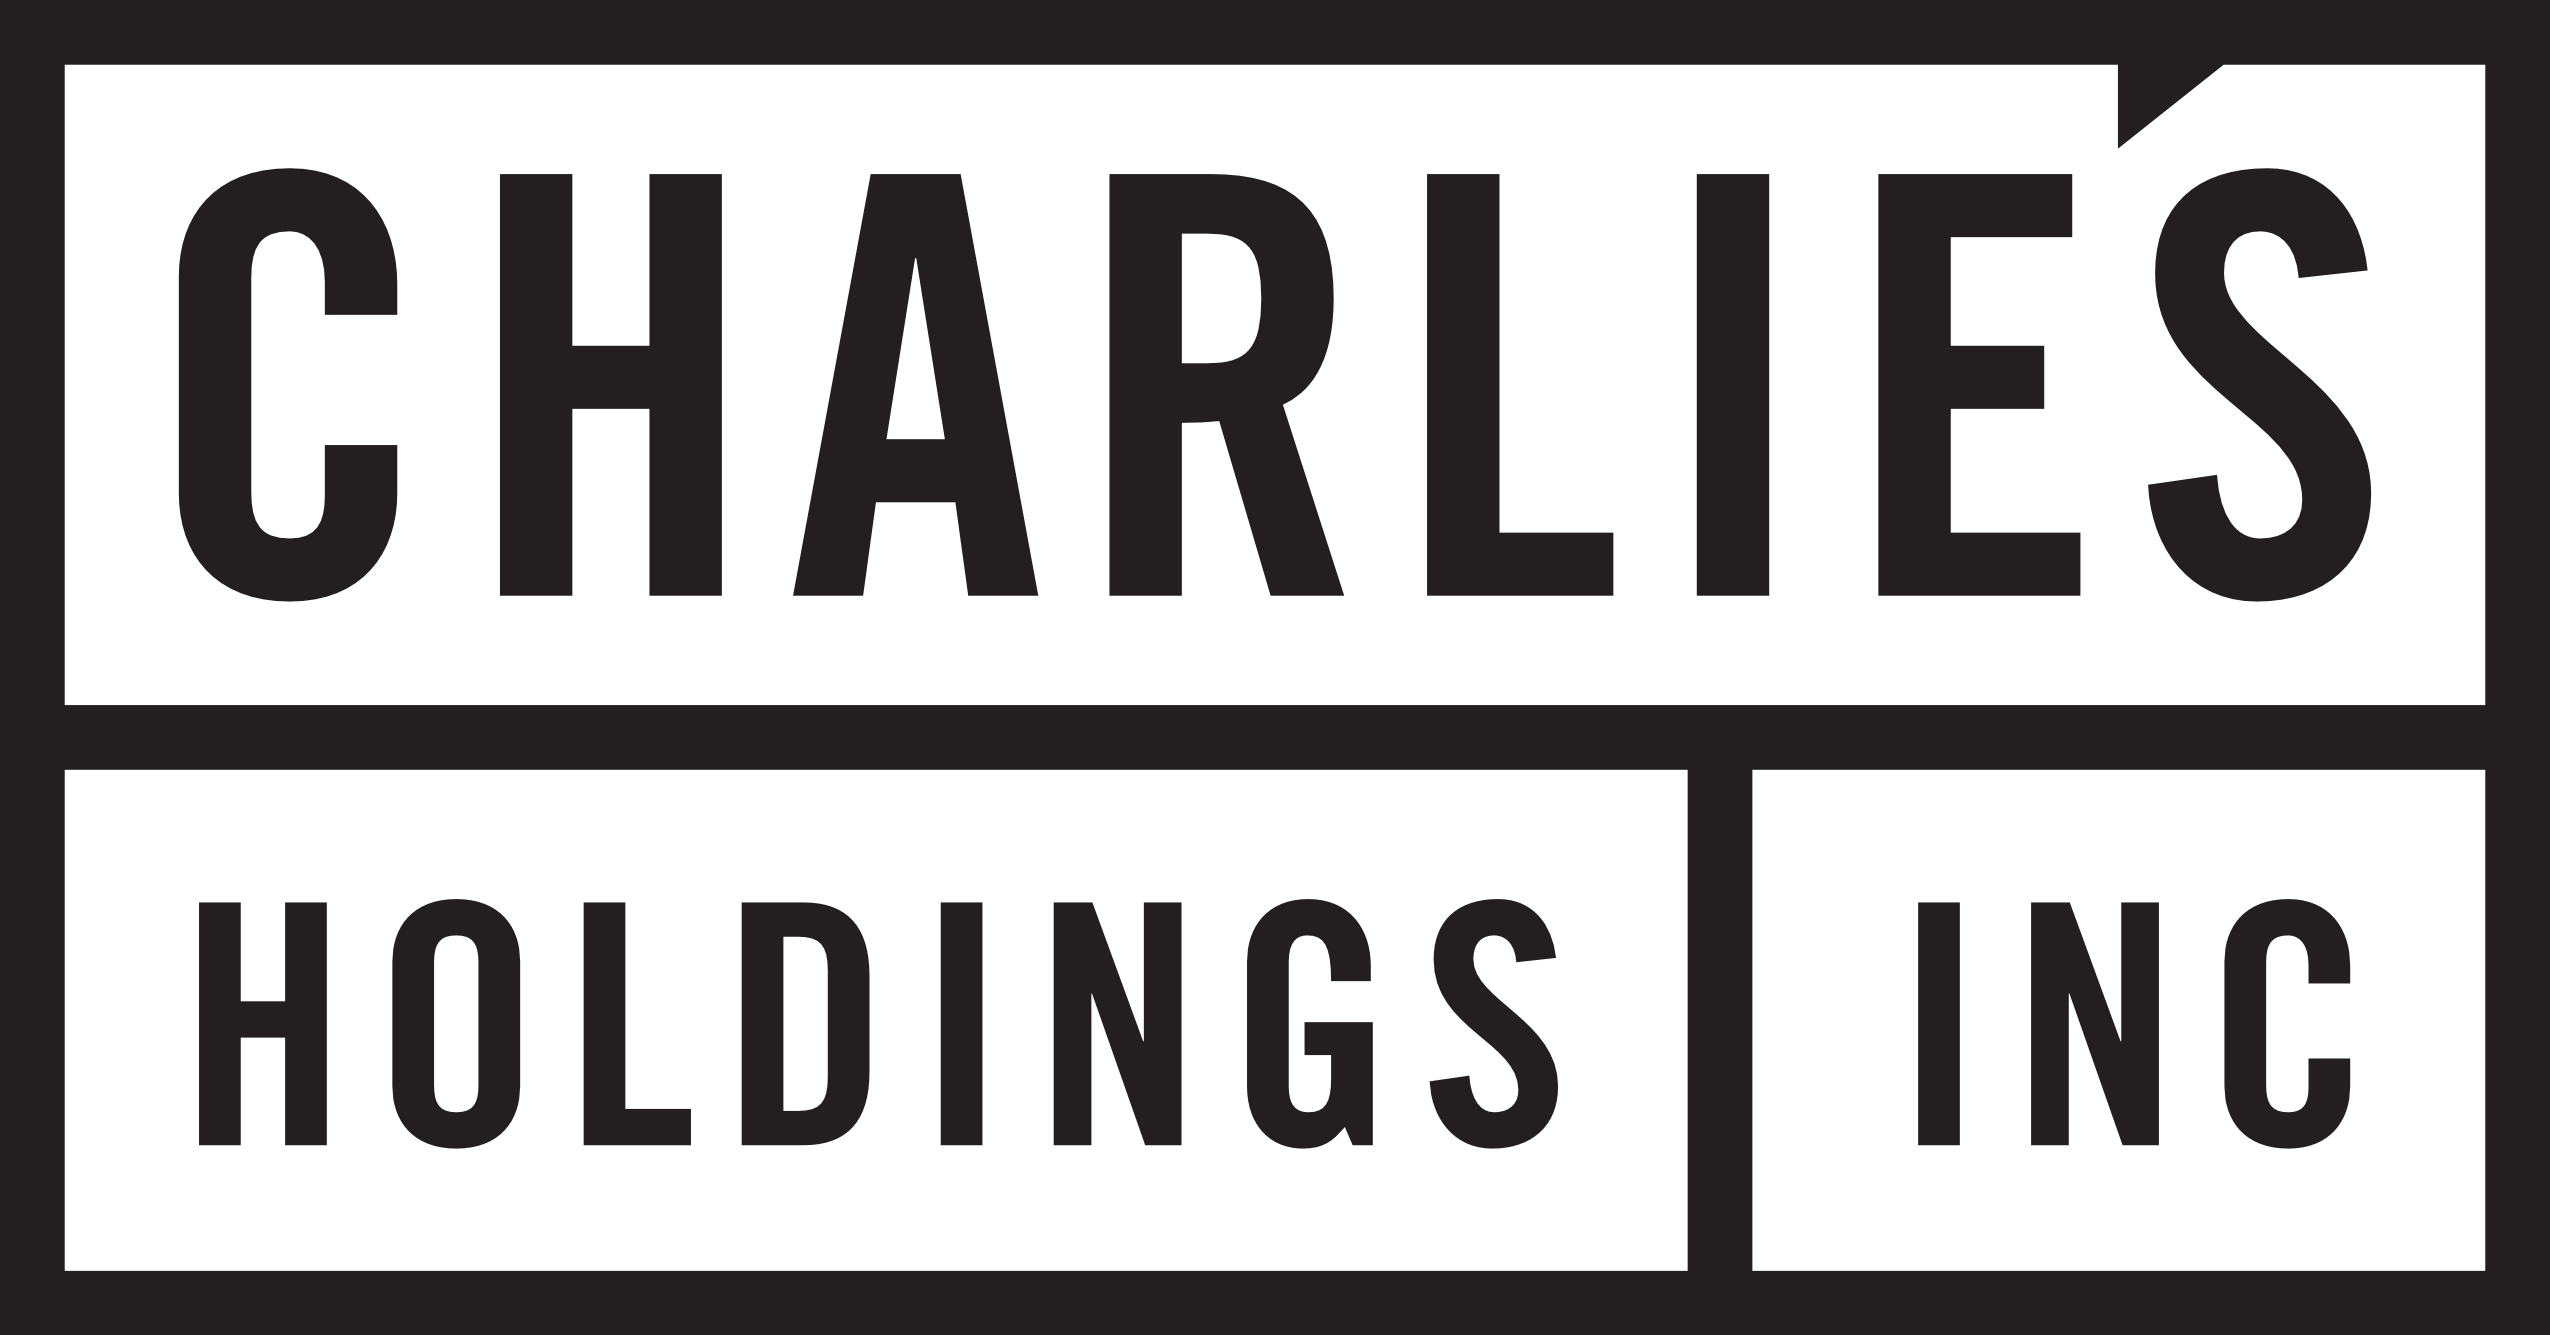 Charlie's Holdings, Inc.